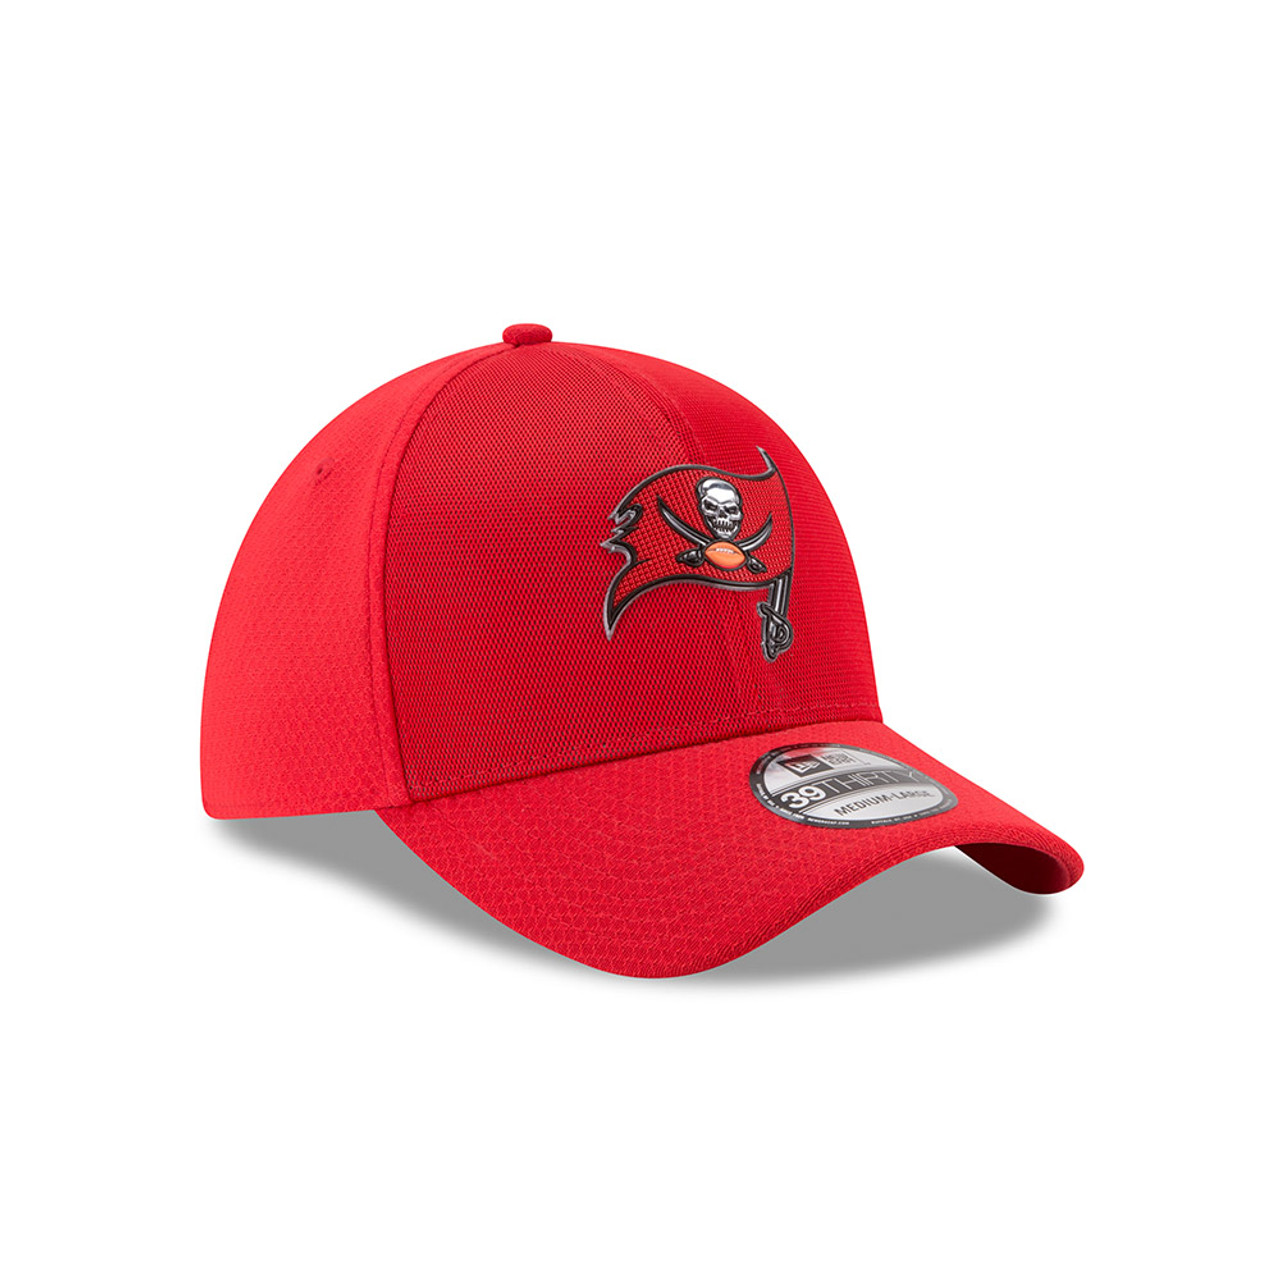 best website 8284a 818ca ... Tampa Bay Buccaneers New Era 2017 Color Rush 39THIRTY Hat. Sale